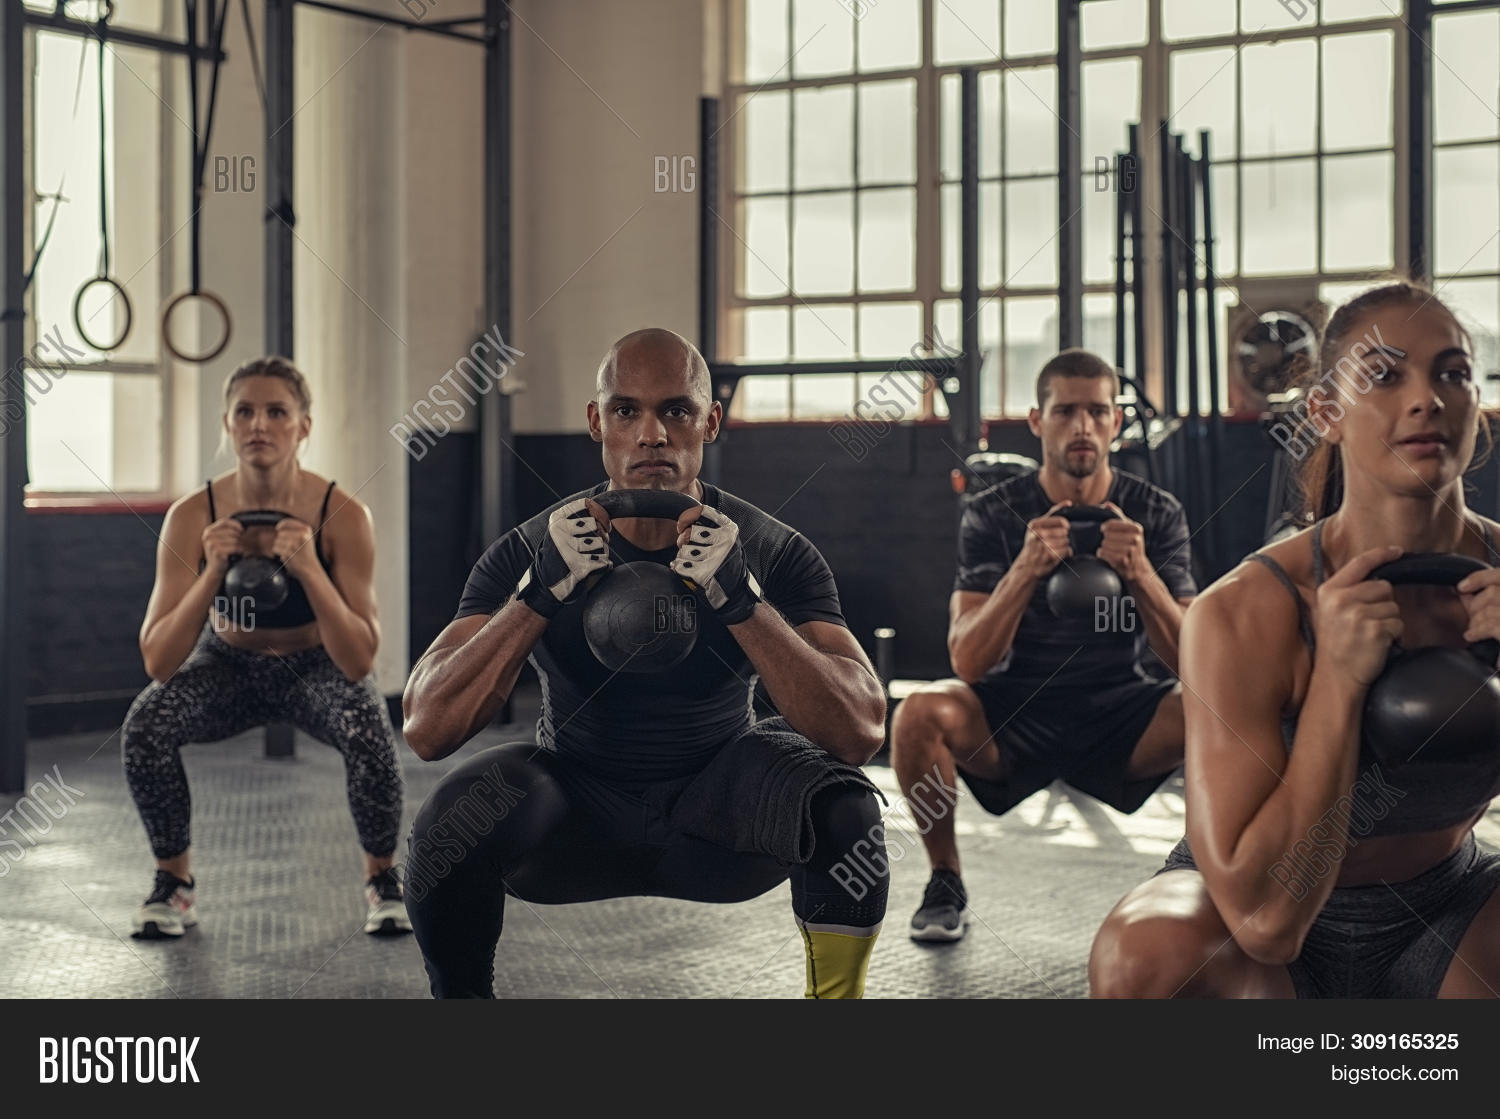 african,american,athletic,bell,class,concentration,cross,determination,determined man,determined woman,endurance,exercise,fit,fitness,group,grunge,gym,healthy,heavy lifting,heavy weight,heavy weight lifting,holding,industrial,kettle,kettle bell,kettlebell,lifting,man,multi ethnic group,multiethnic,muscular,people,power,sport,squat,squat exercise,squats,squatting,strength,strength training,strong,team,training,weight,weight lifting,weightlifting,woman,workout,young